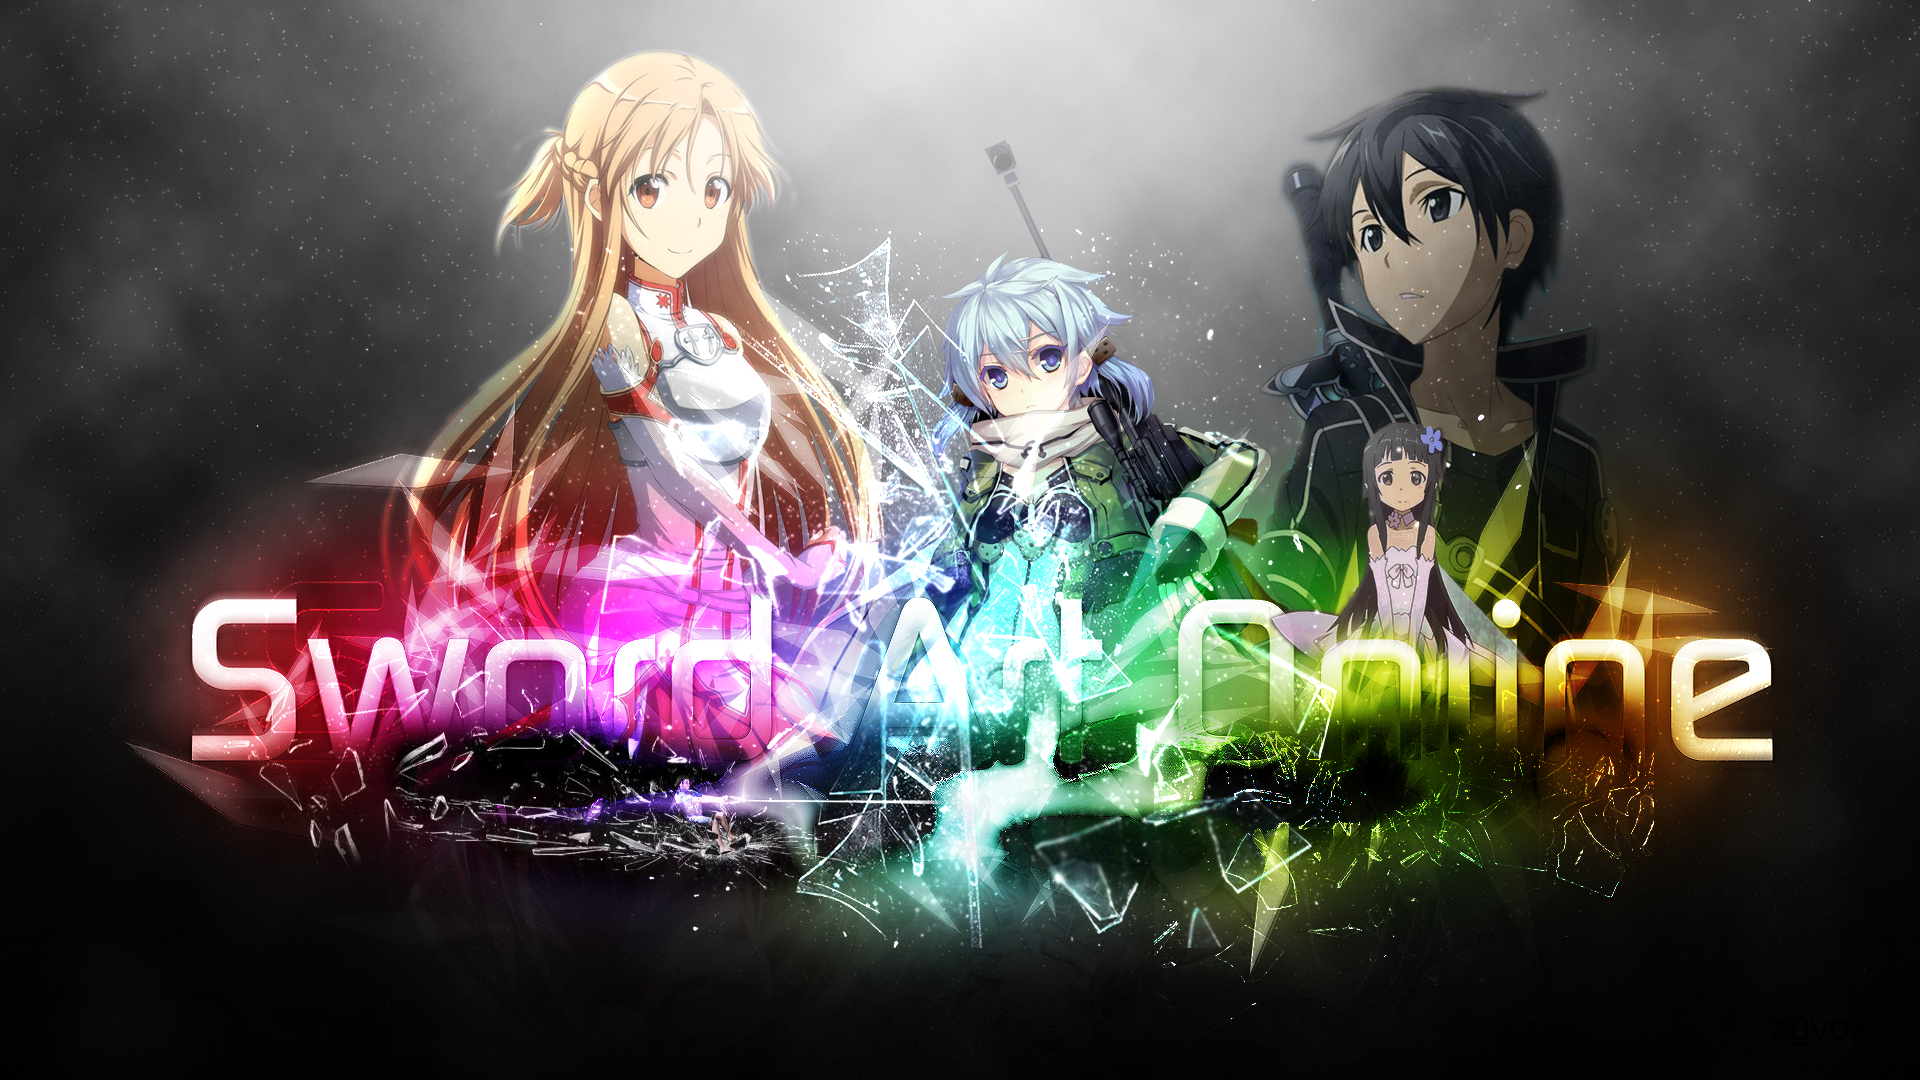 Wallpaper (Kirito, Asuna, Sinon, Yui) Computer Wallpapers, Desktop ...